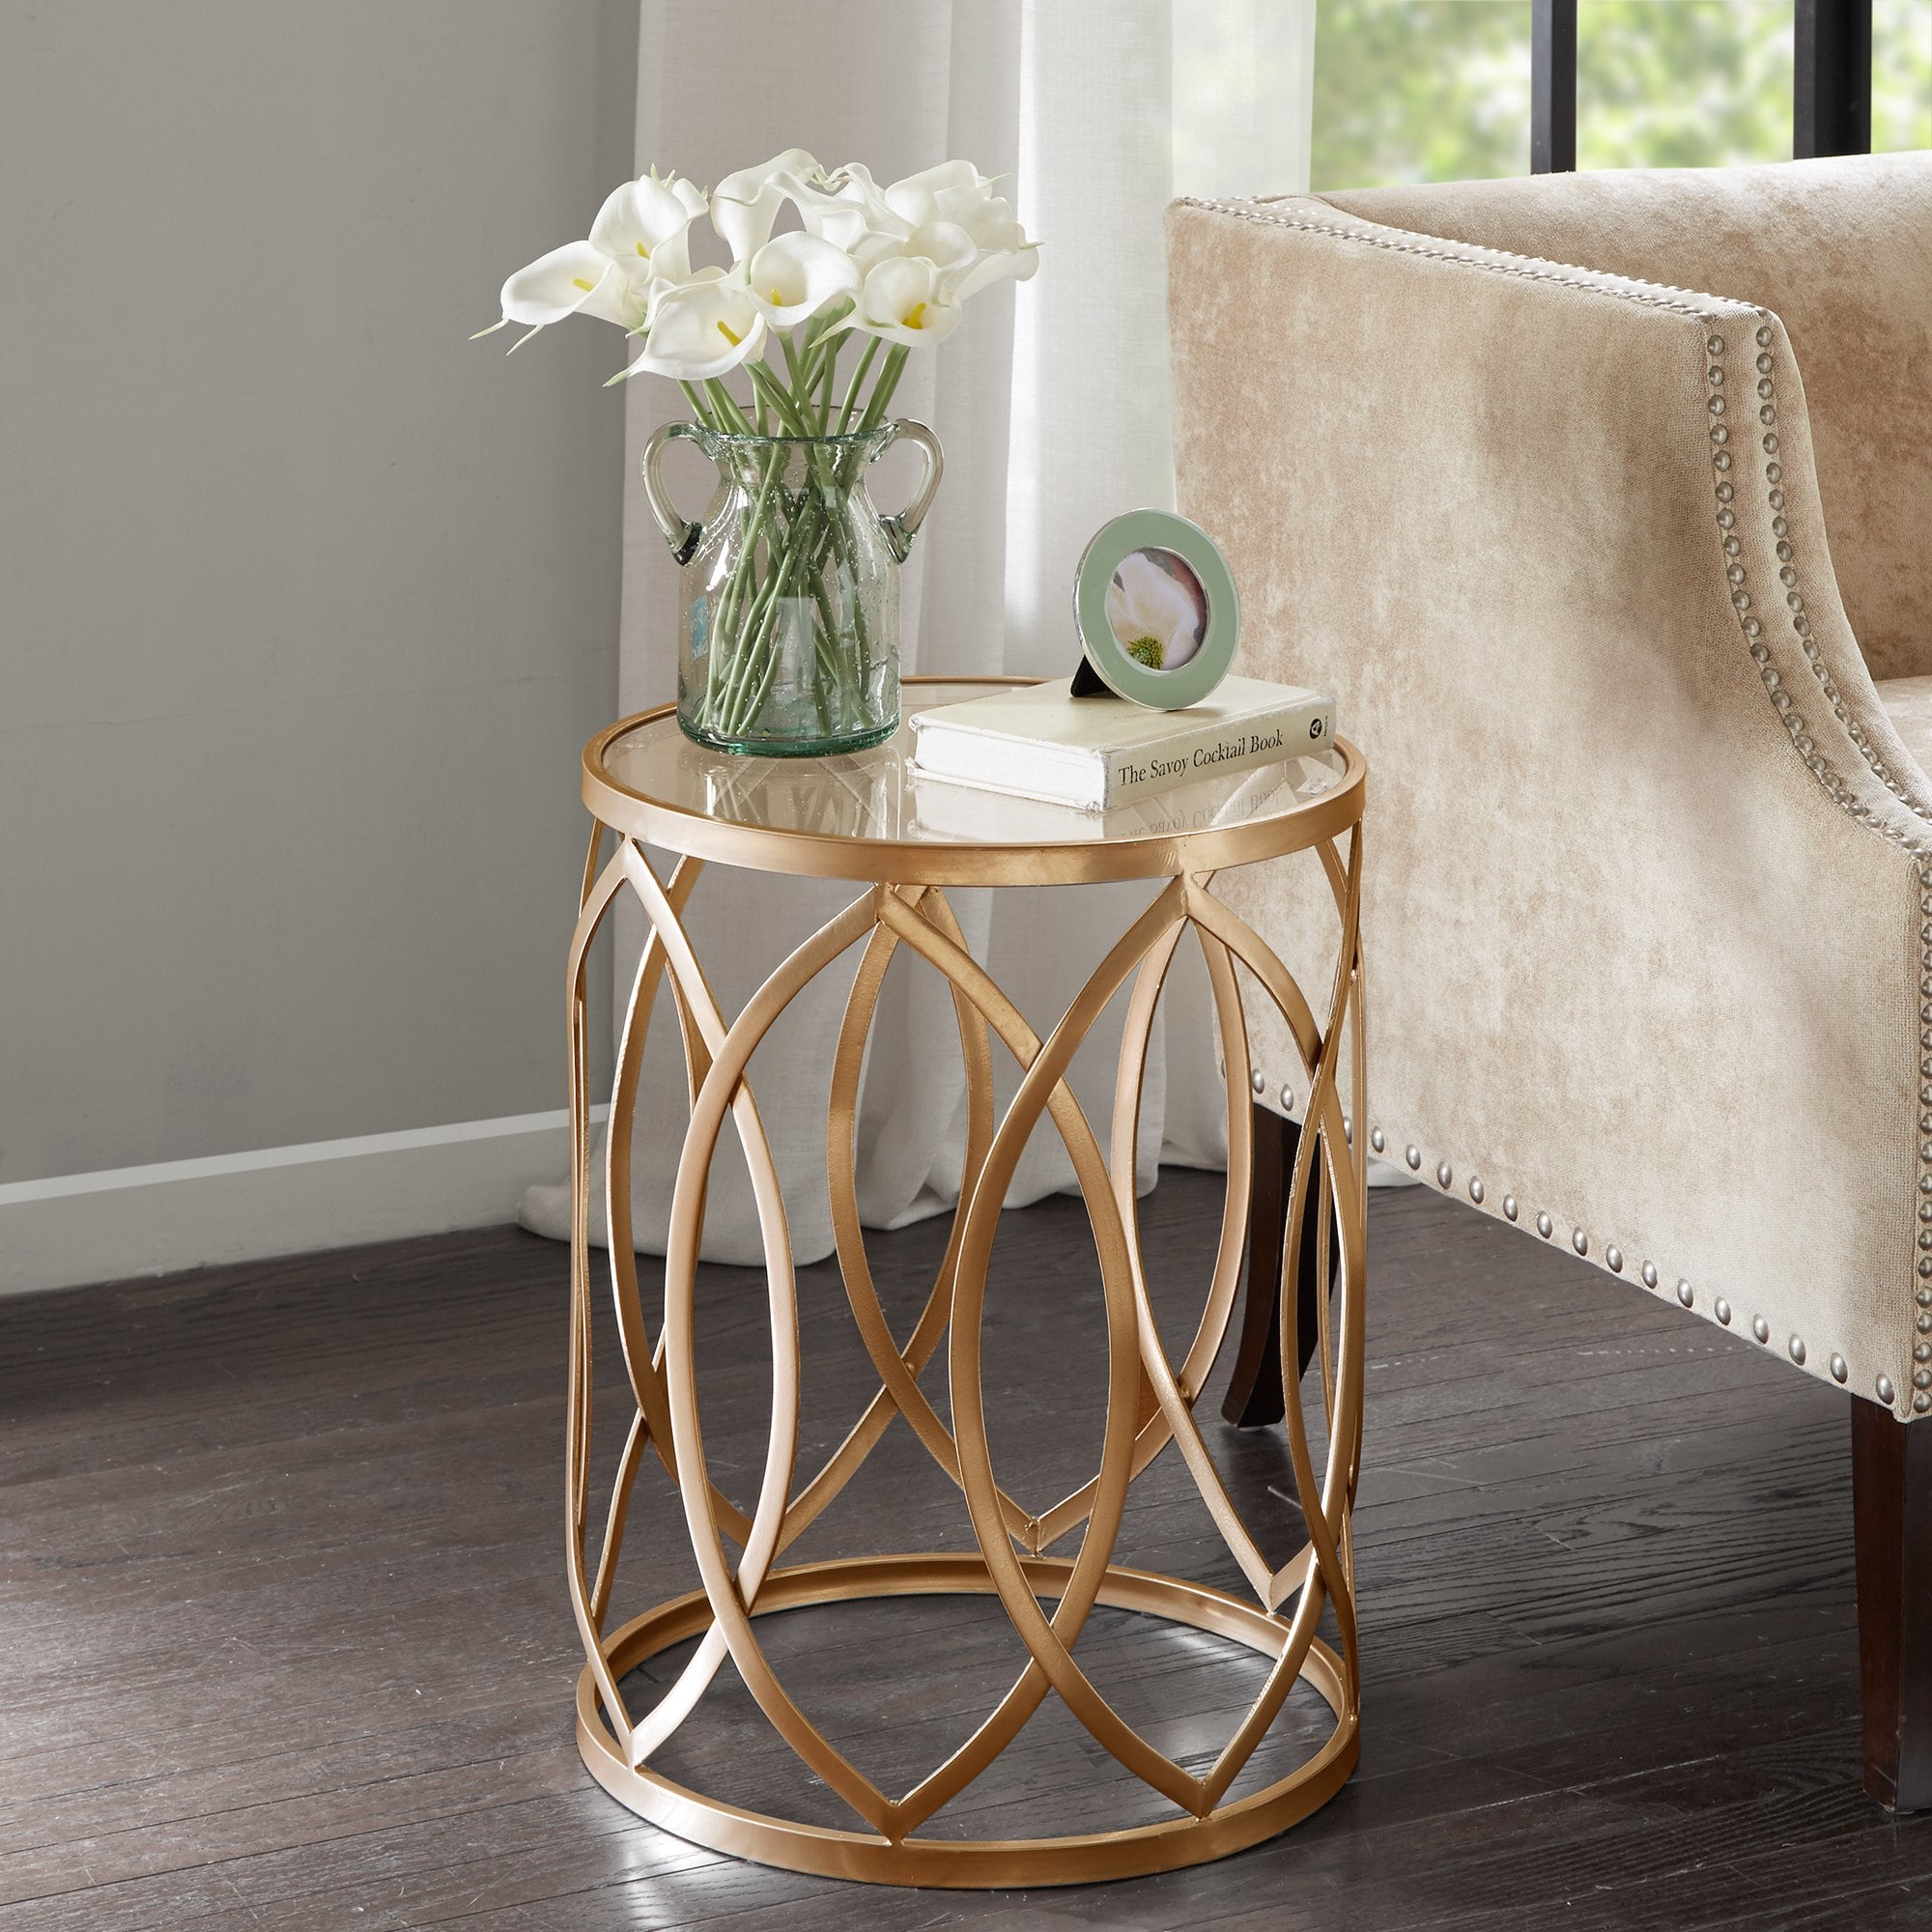 silver orchid grant gold glass metal eyelet accent table madison park coen kitchen dining sets target chaise nautical flush mount ceiling light corner chair and set west elm couch